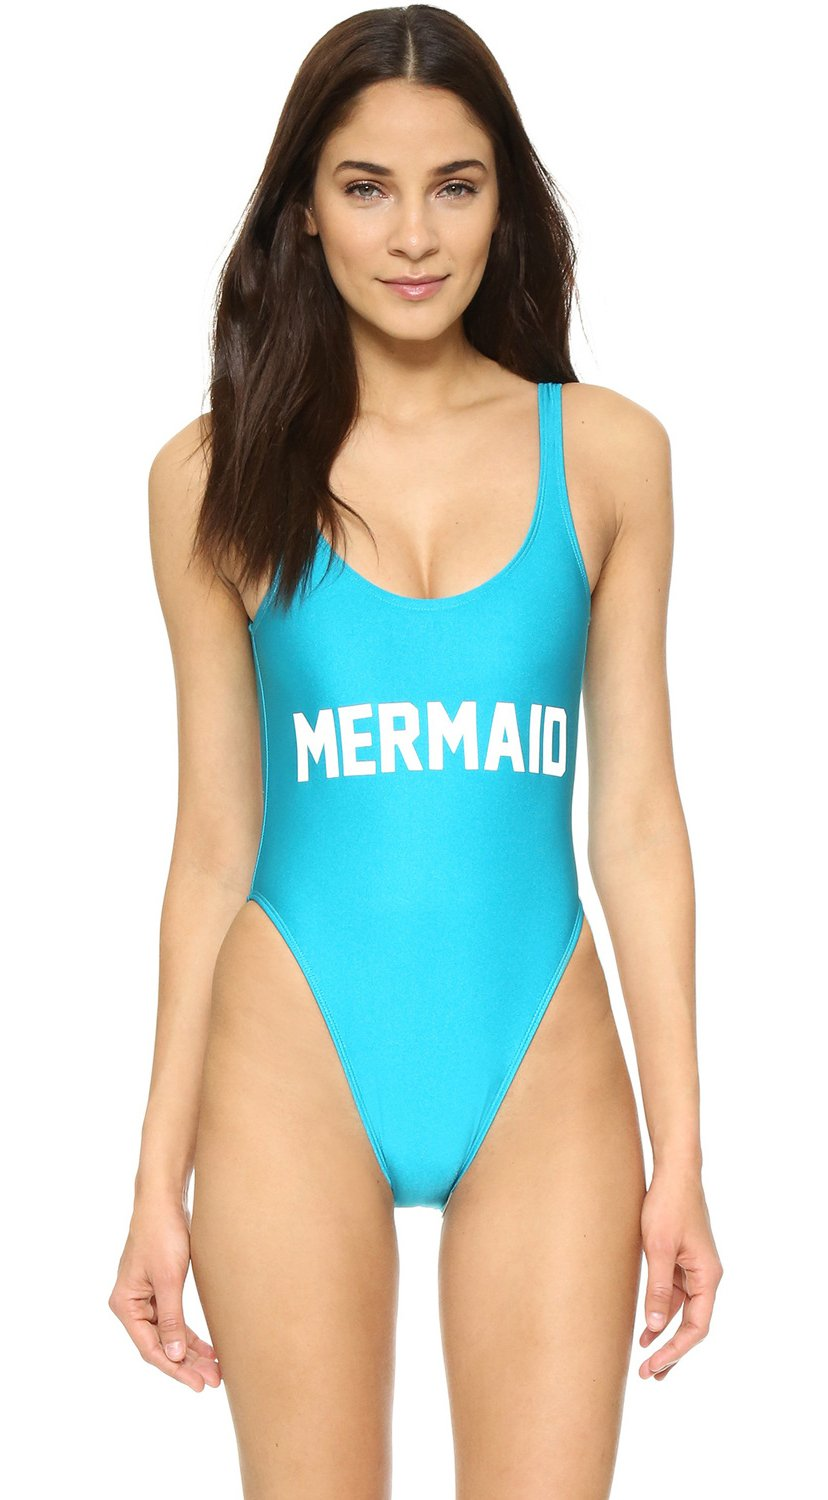 WorkTd Womens Letter Print Backless Monokini One Piece Swimsuit Bathing Suits Mermaid Style S